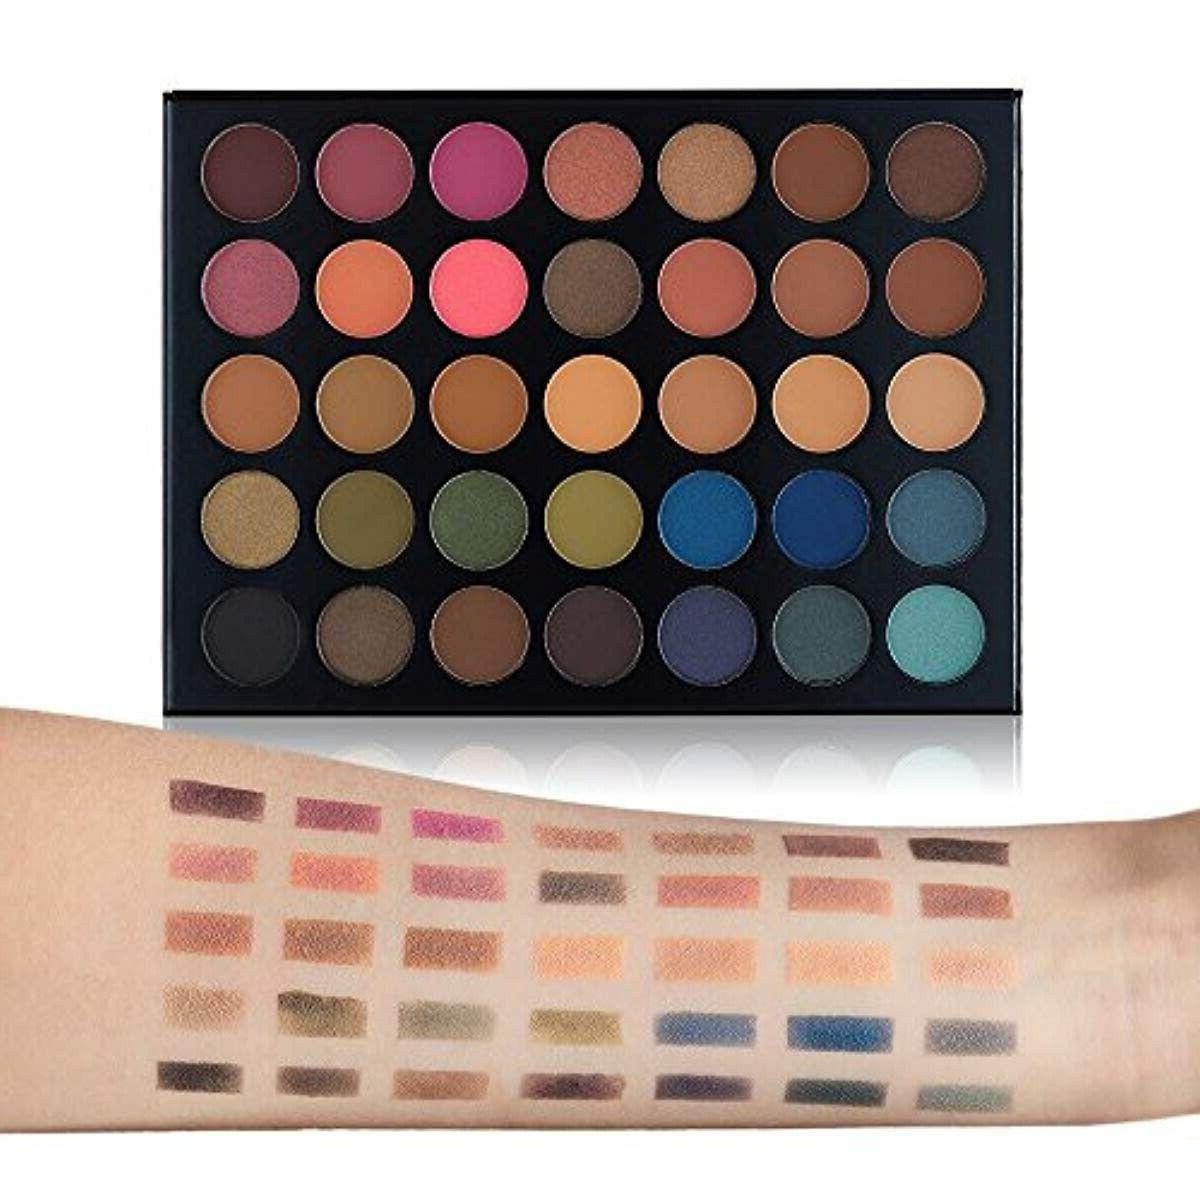 Beauty Glazed Eyeshadow 35 Colors Blendable Chunky Mat